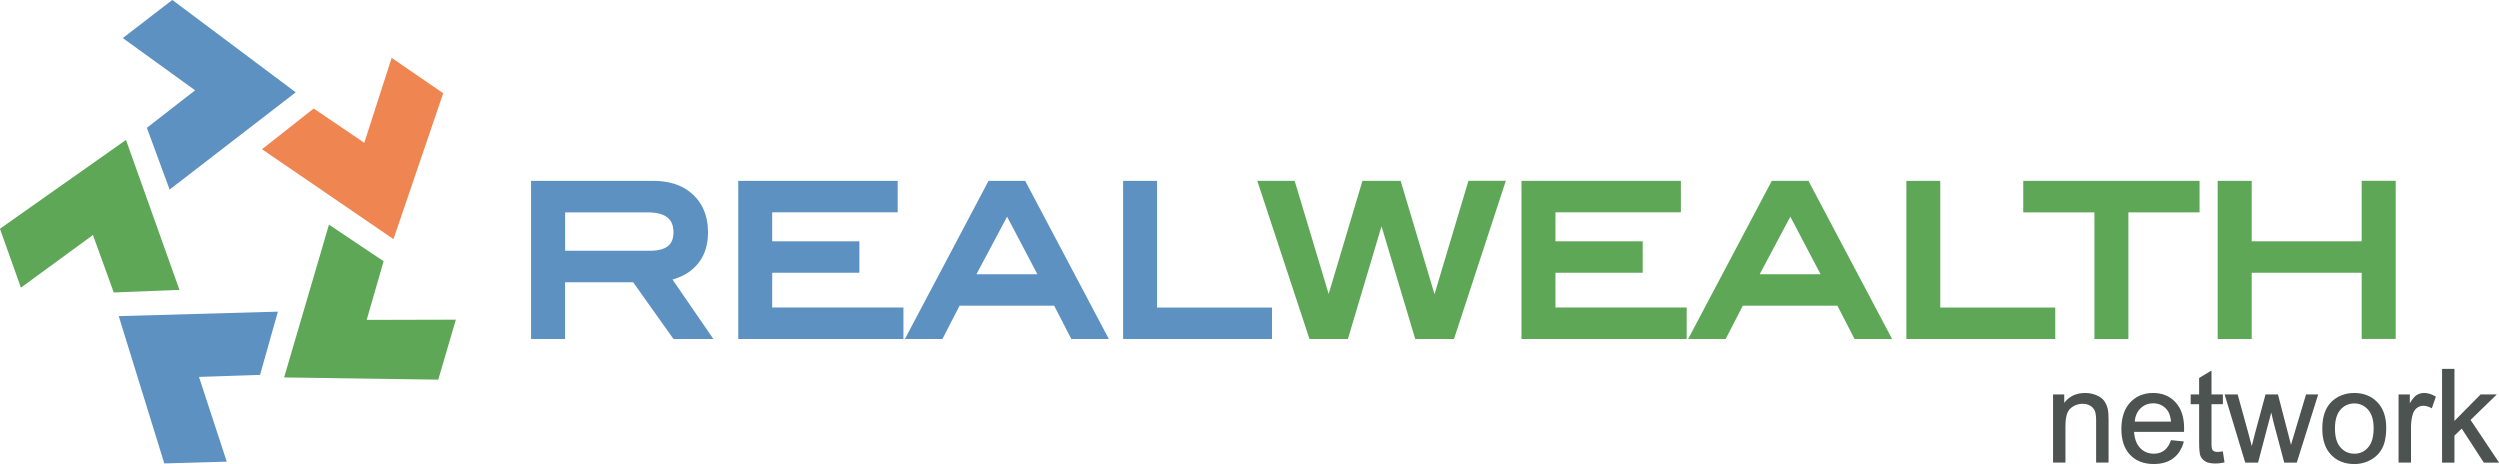 rwn-logo-color-final.png